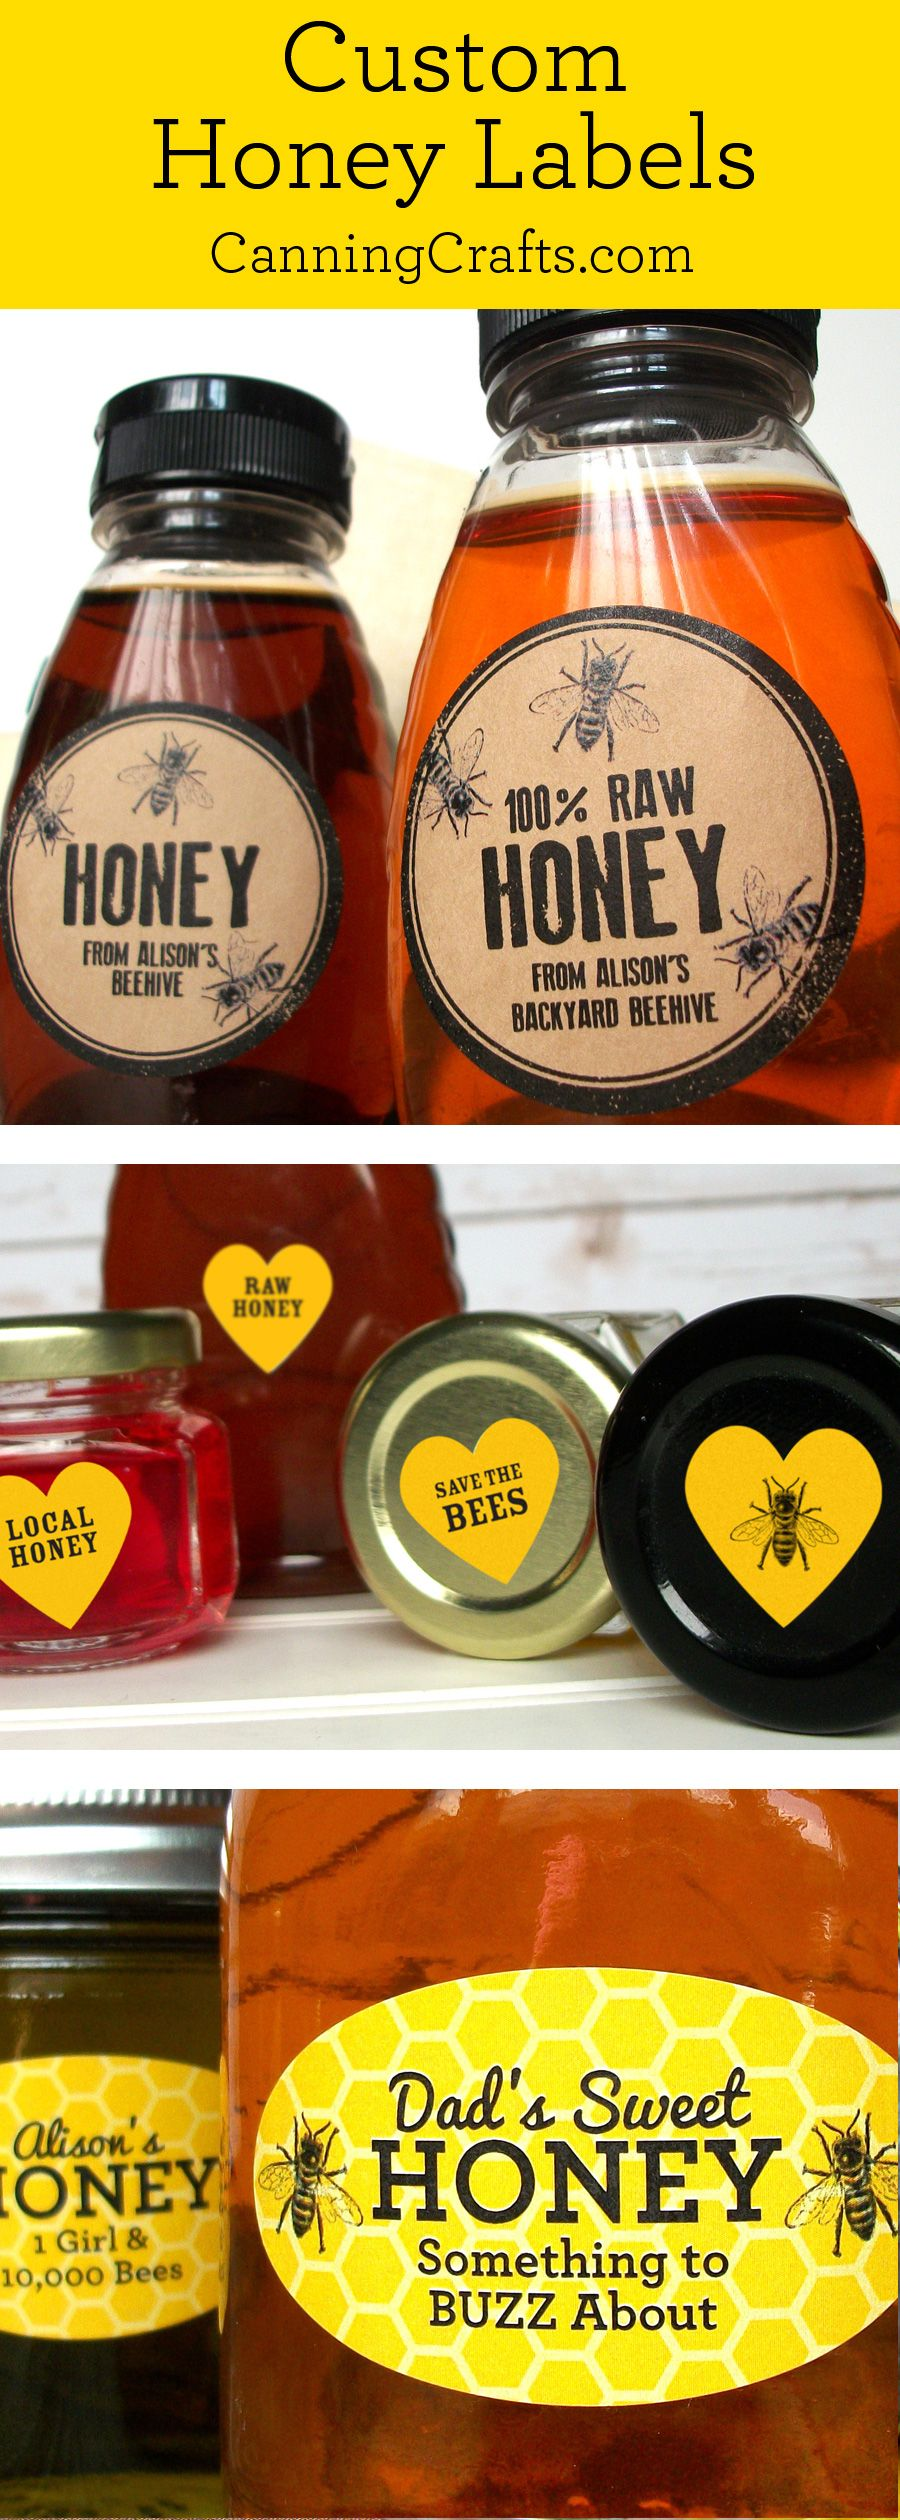 custom honey labels are a great gift for backyard beekeepers